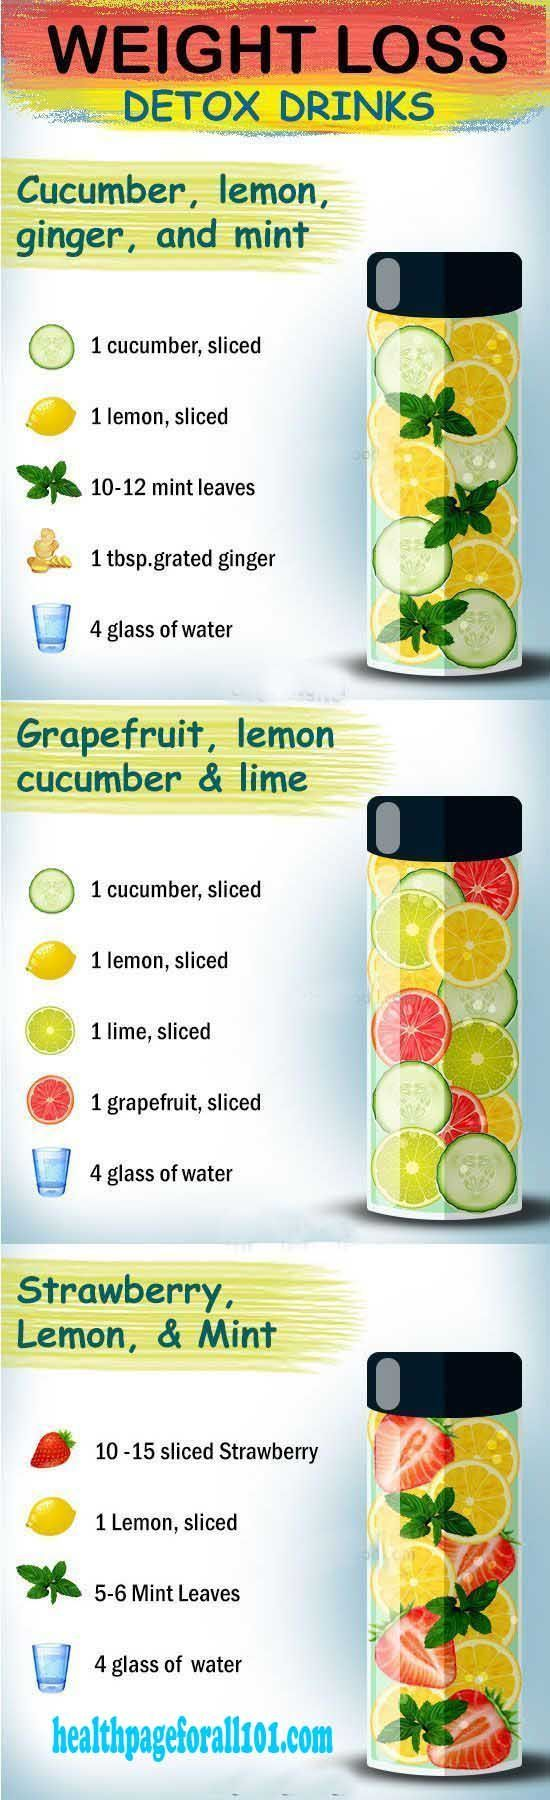 Natural Belly Slimming Detox Water Recipe - Detox Water Recipes to Help You Lose...